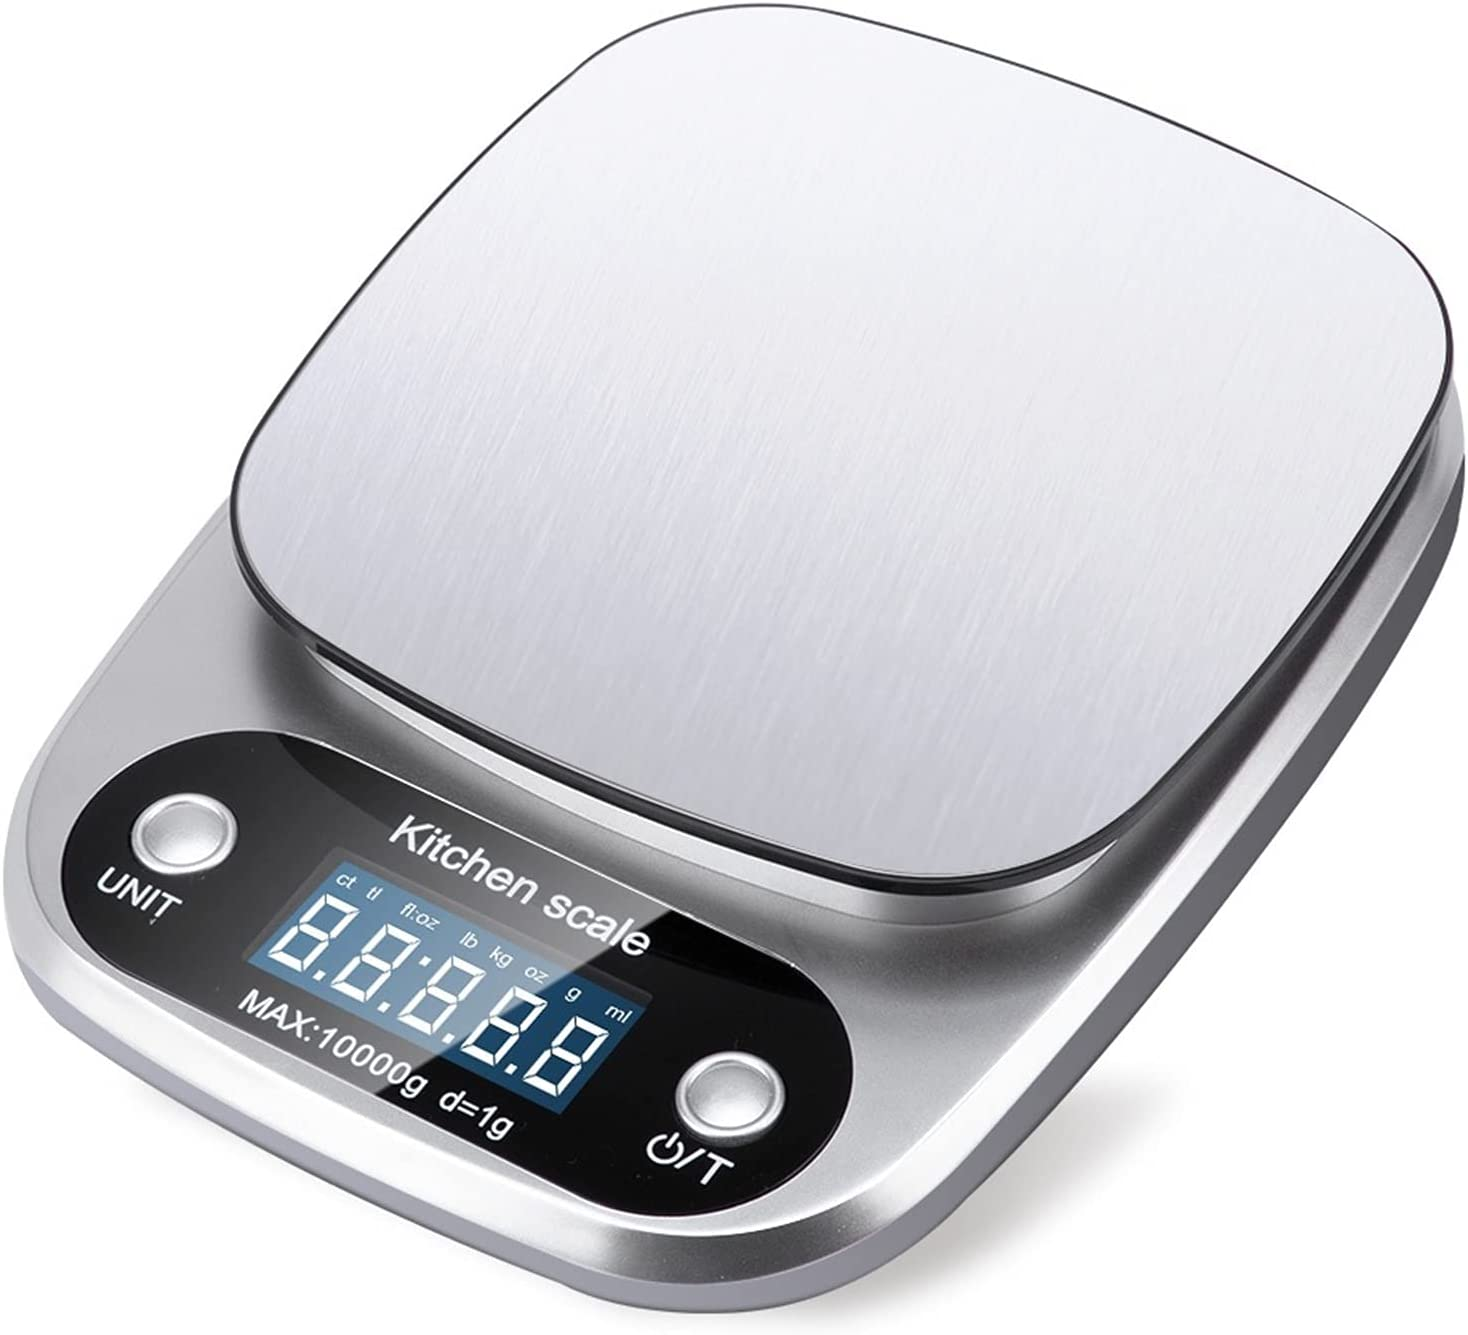 5kg 10g 1g 0.1g Digital Arlington Mall Scale Deluxe Kit LCD Portable Electronic Scales